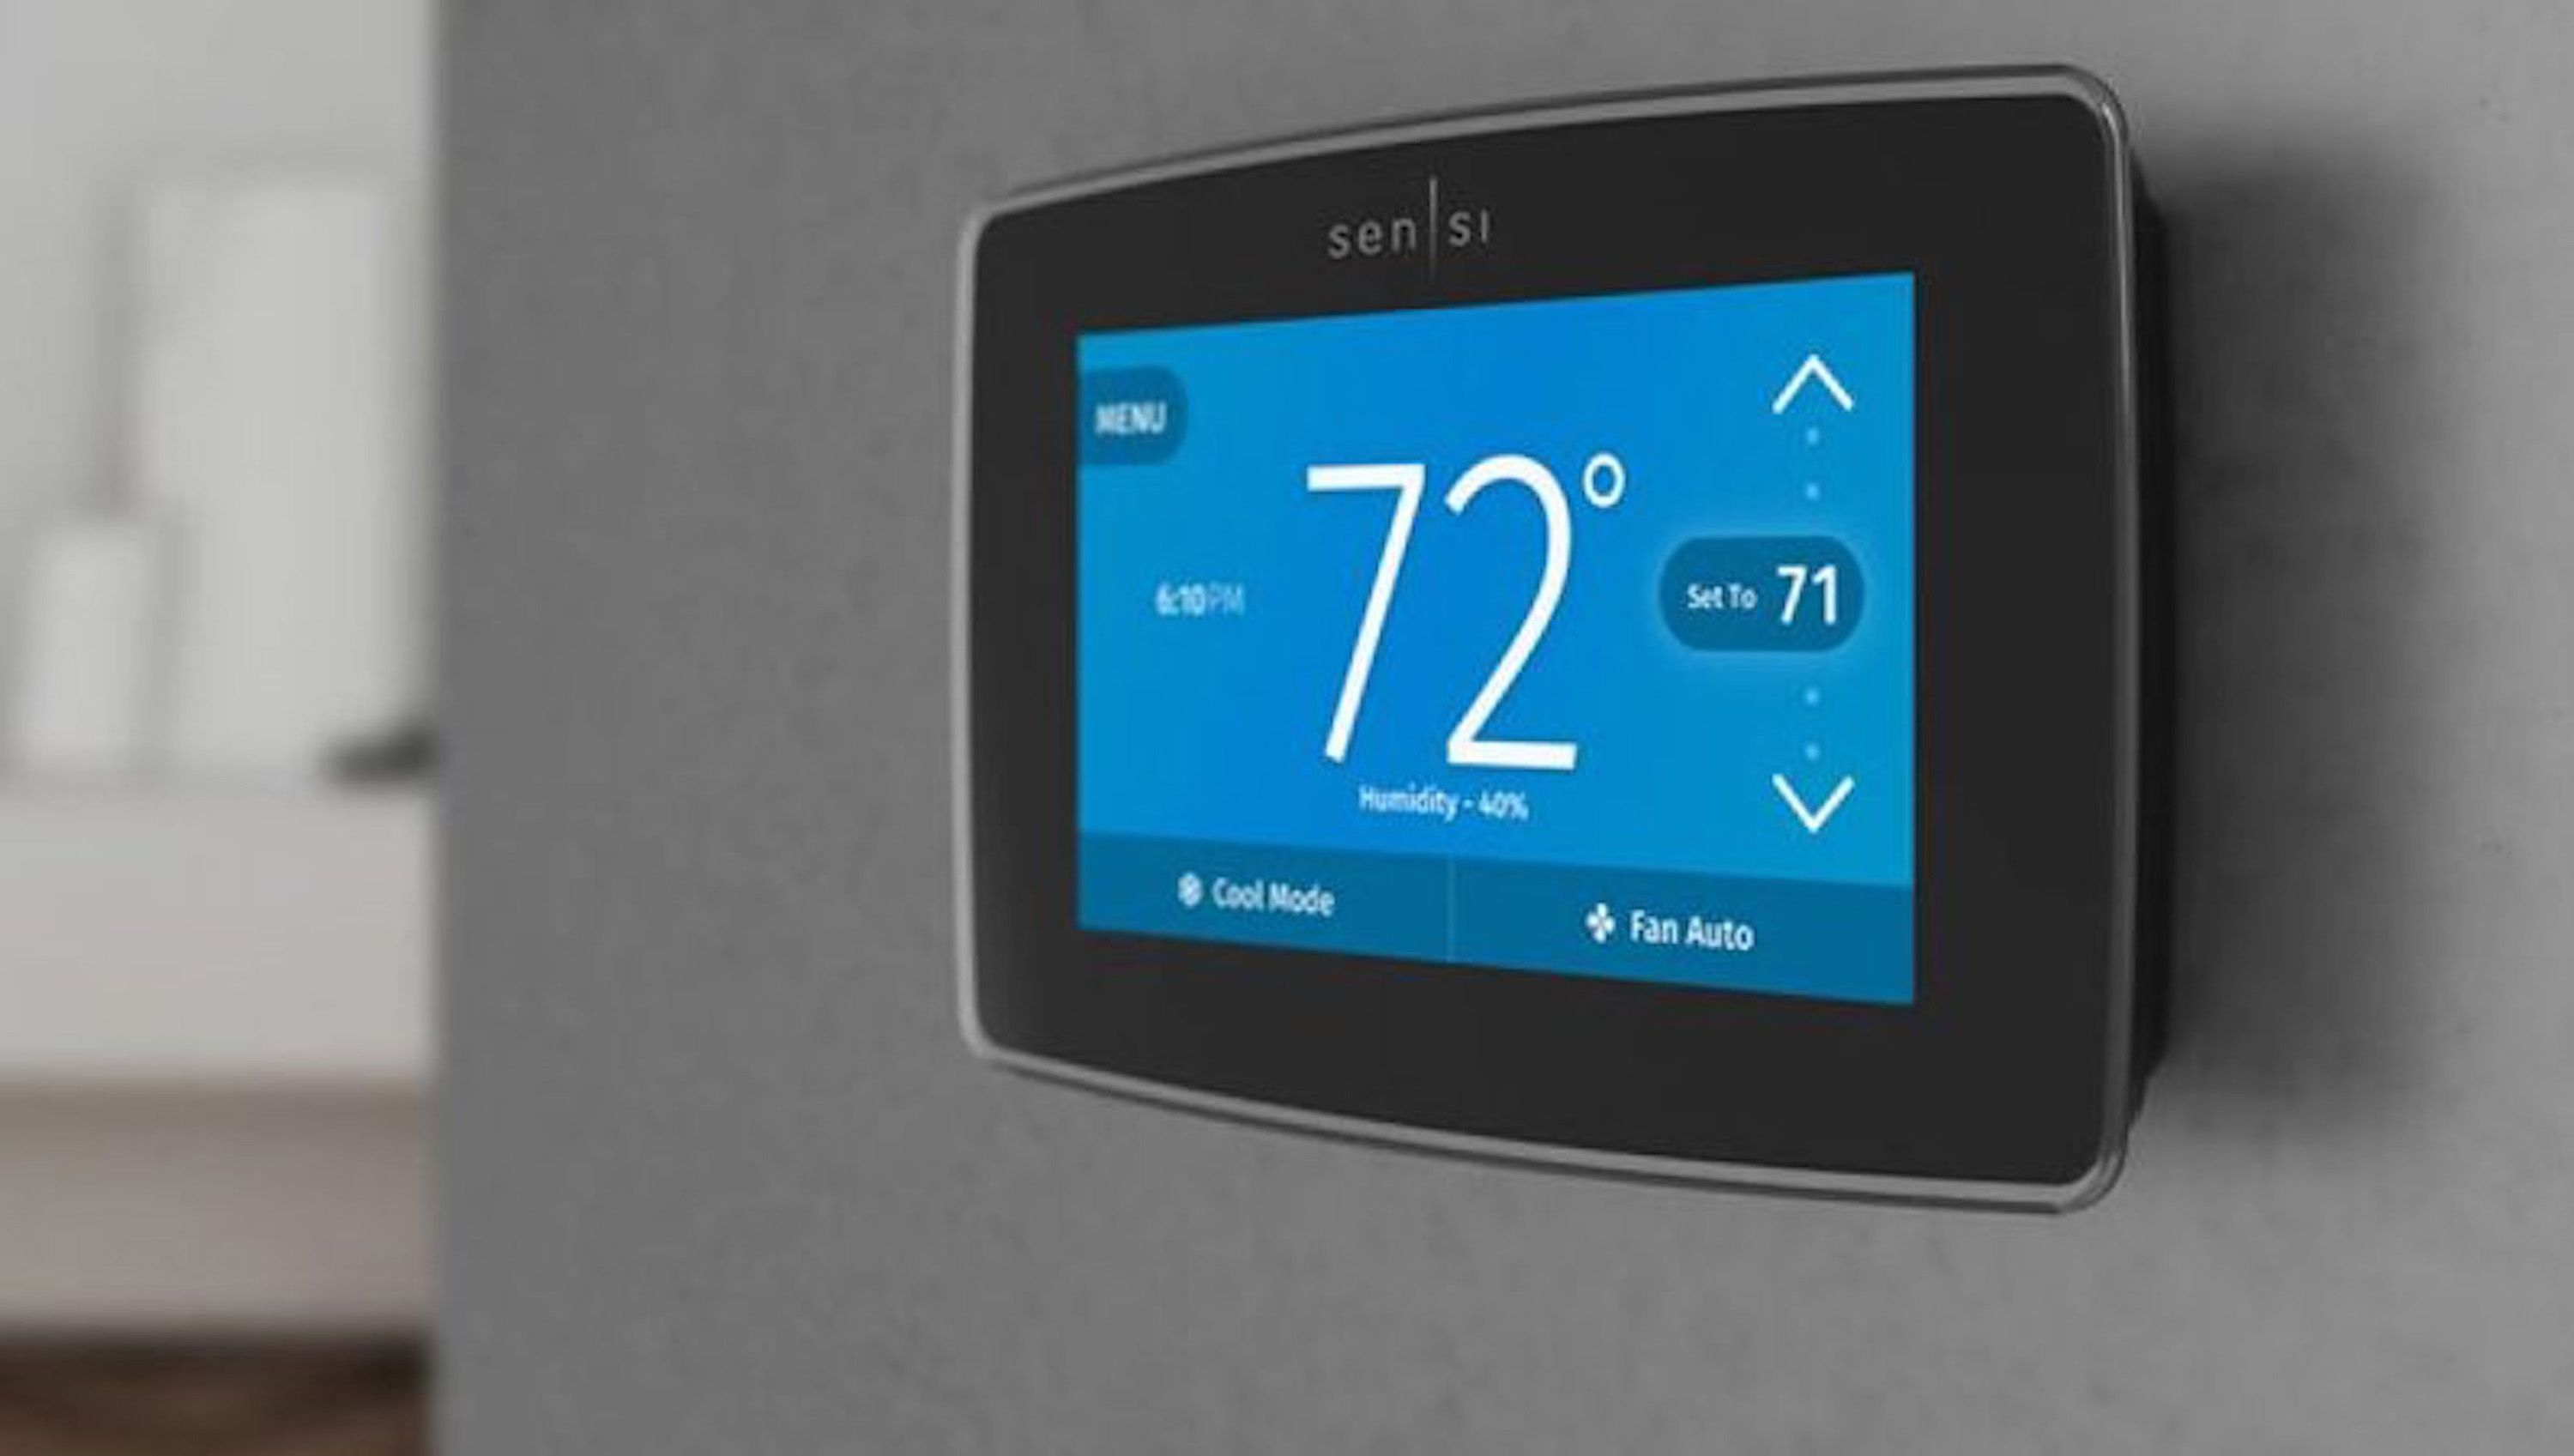 Best Smart Home Products Smart thermostats, Thermostat